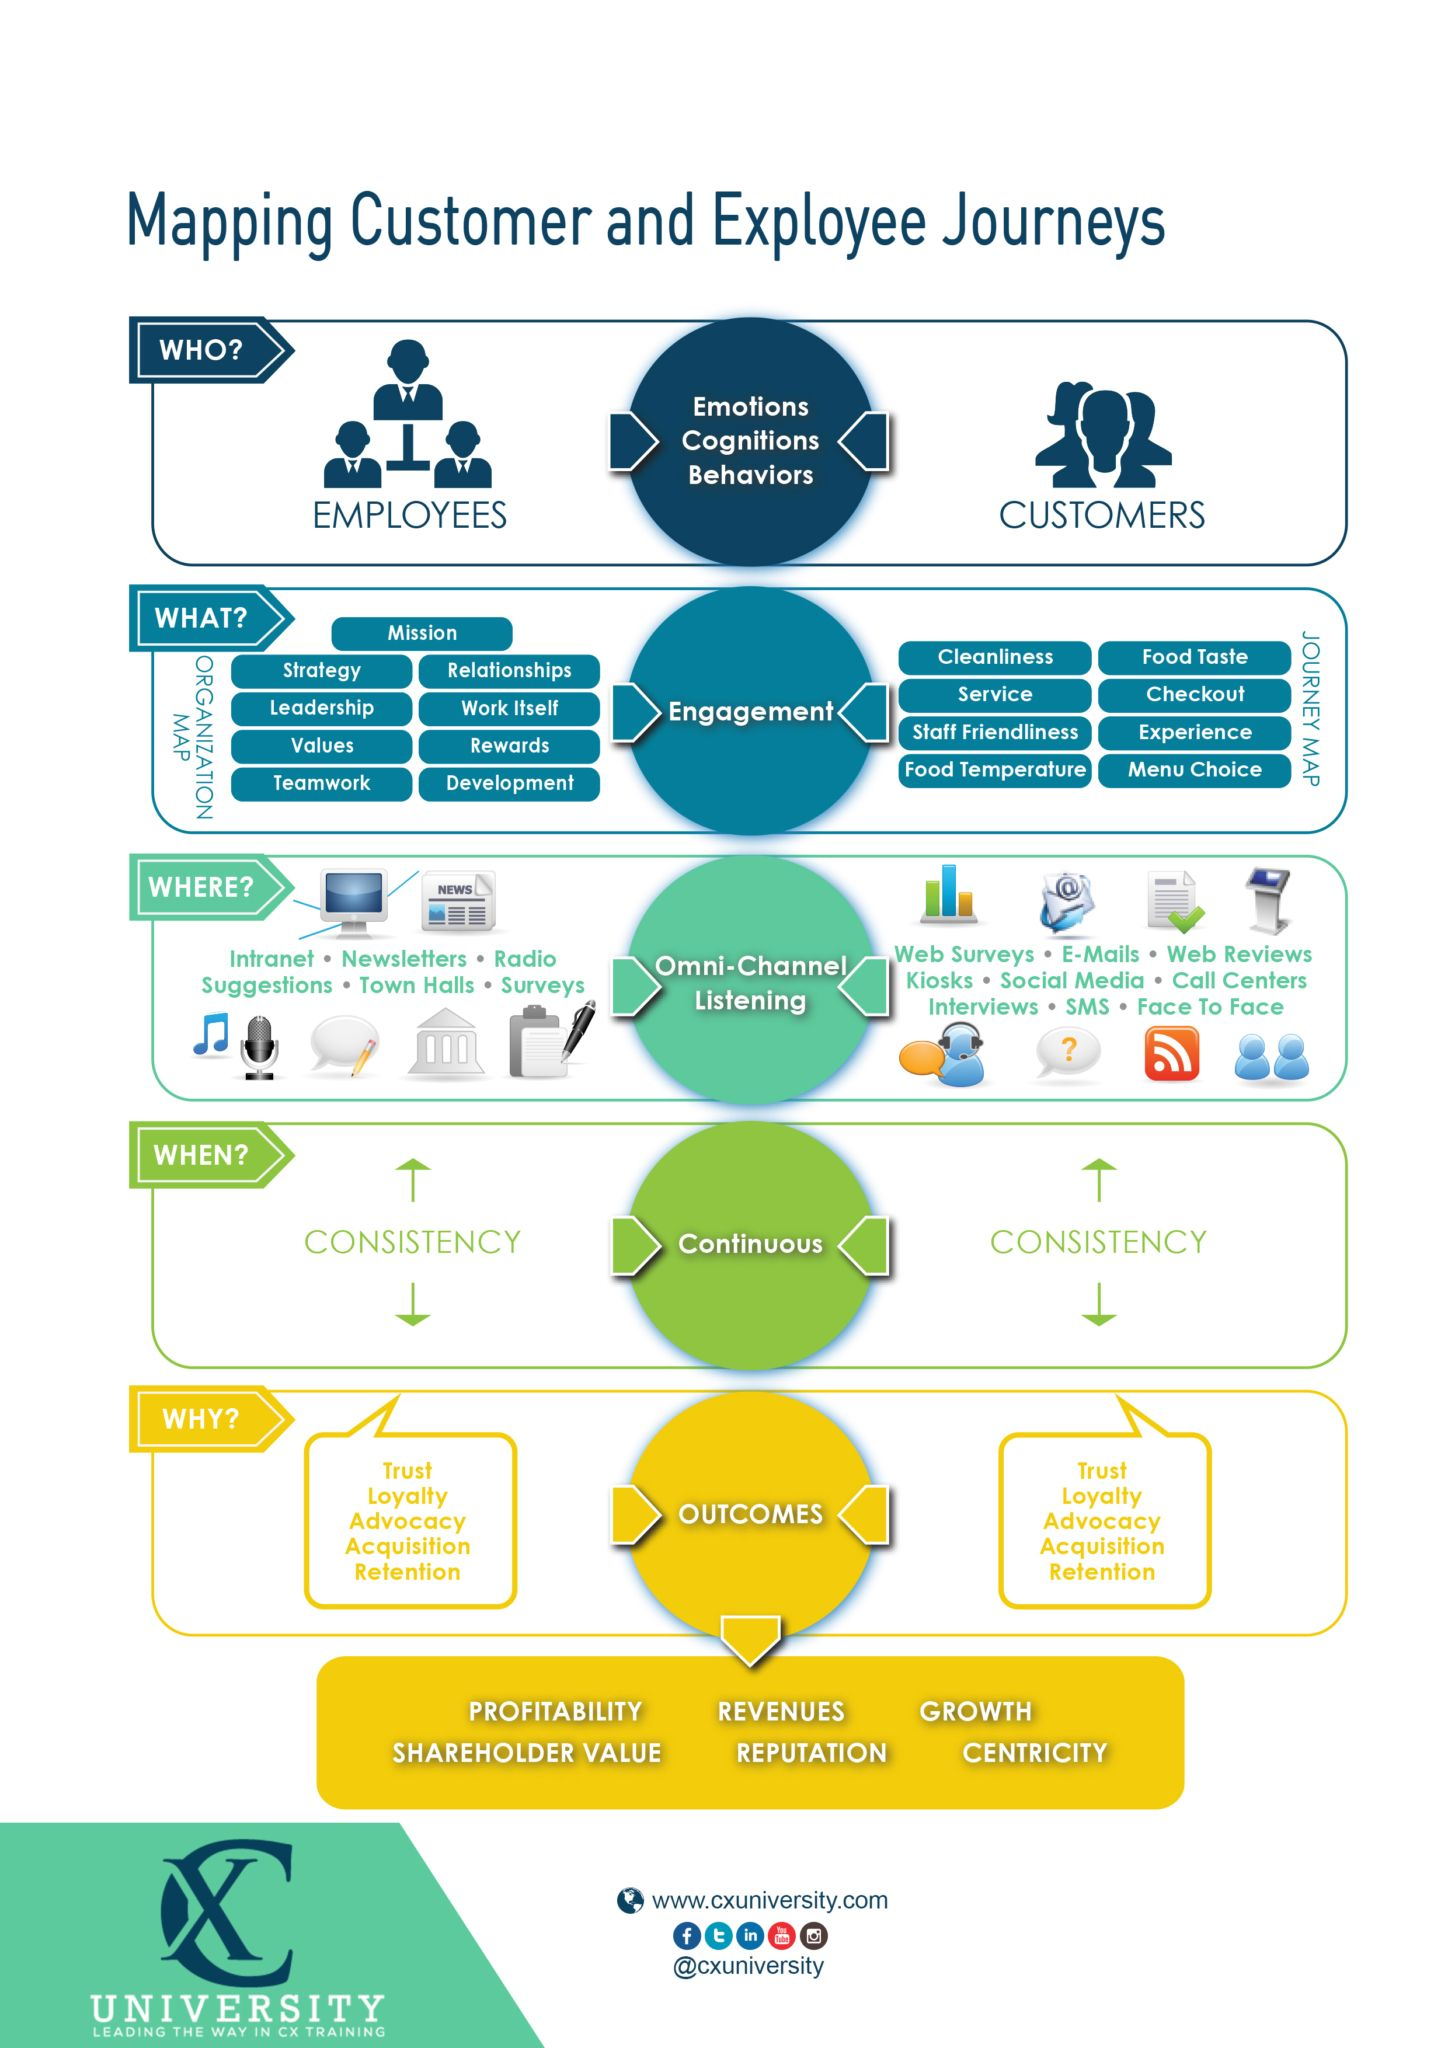 Mapping Journeys Infographic Customer Journey Mapping Customer Experience Mapping Journey Mapping Voice of the customer template